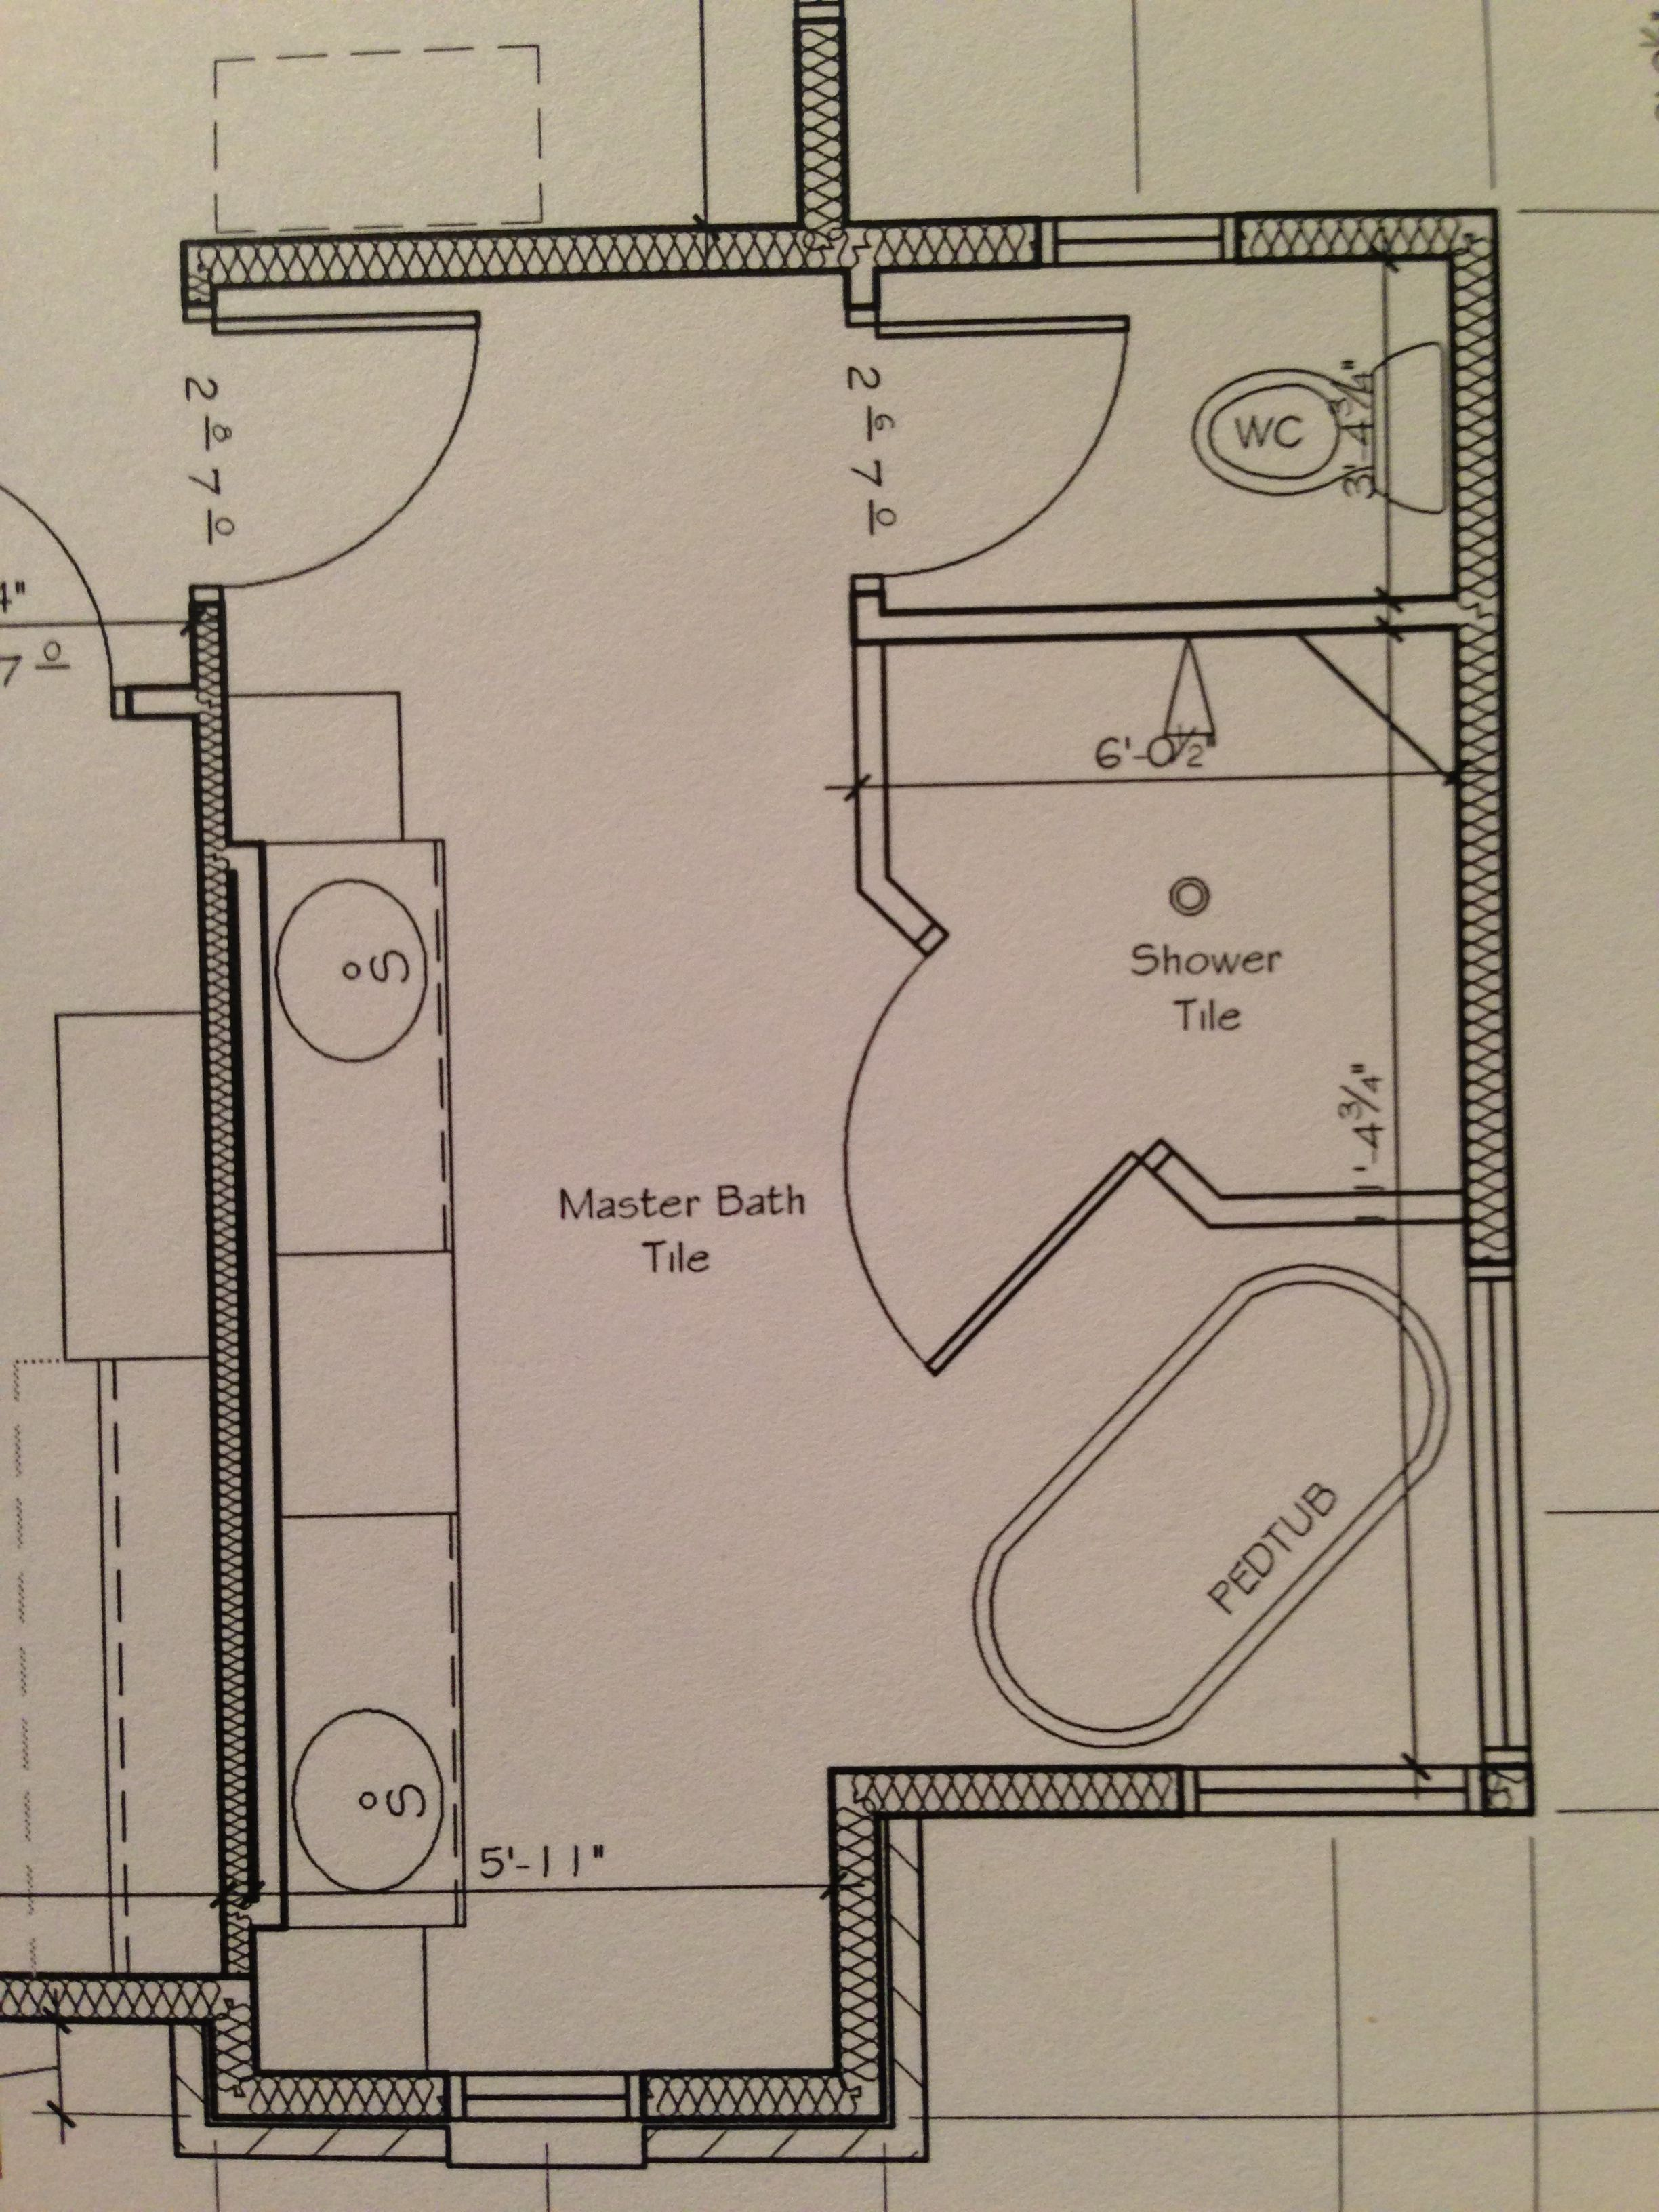 Make Sure To Plan For Towel Bars In Bath Floor Plan And